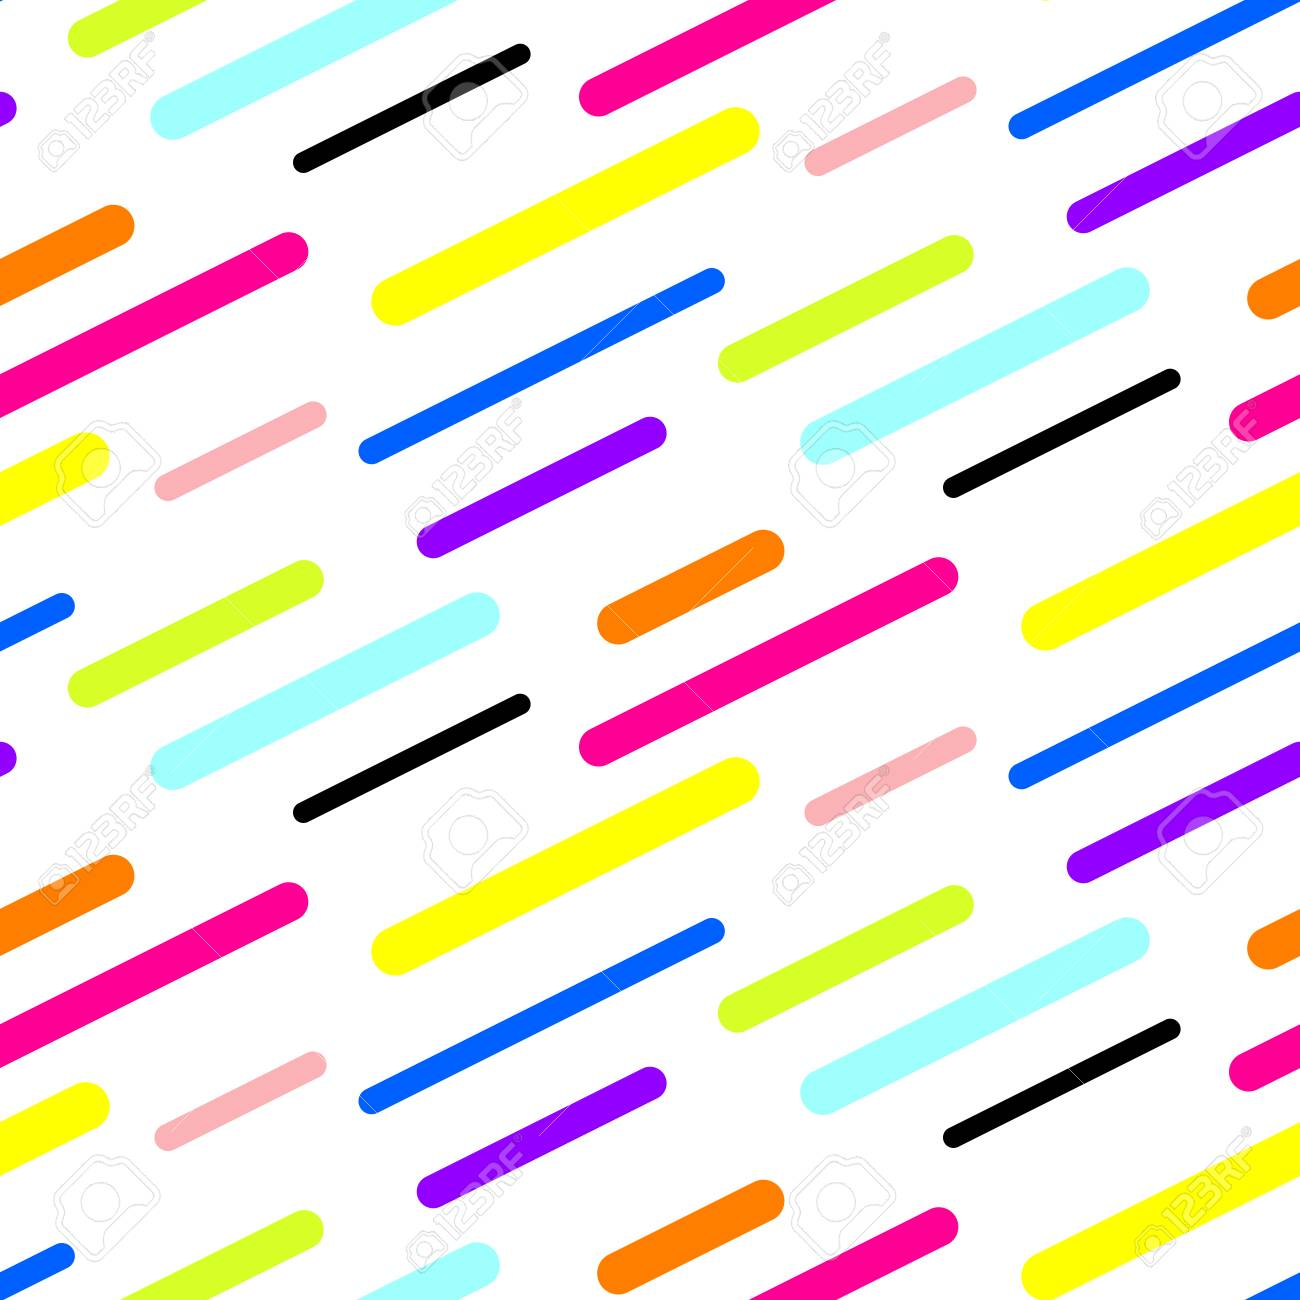 Abstract Diagonal Sticks Seamless Vector Pattern Colorful Neon Simple Shapes Background For Website Wallpaper